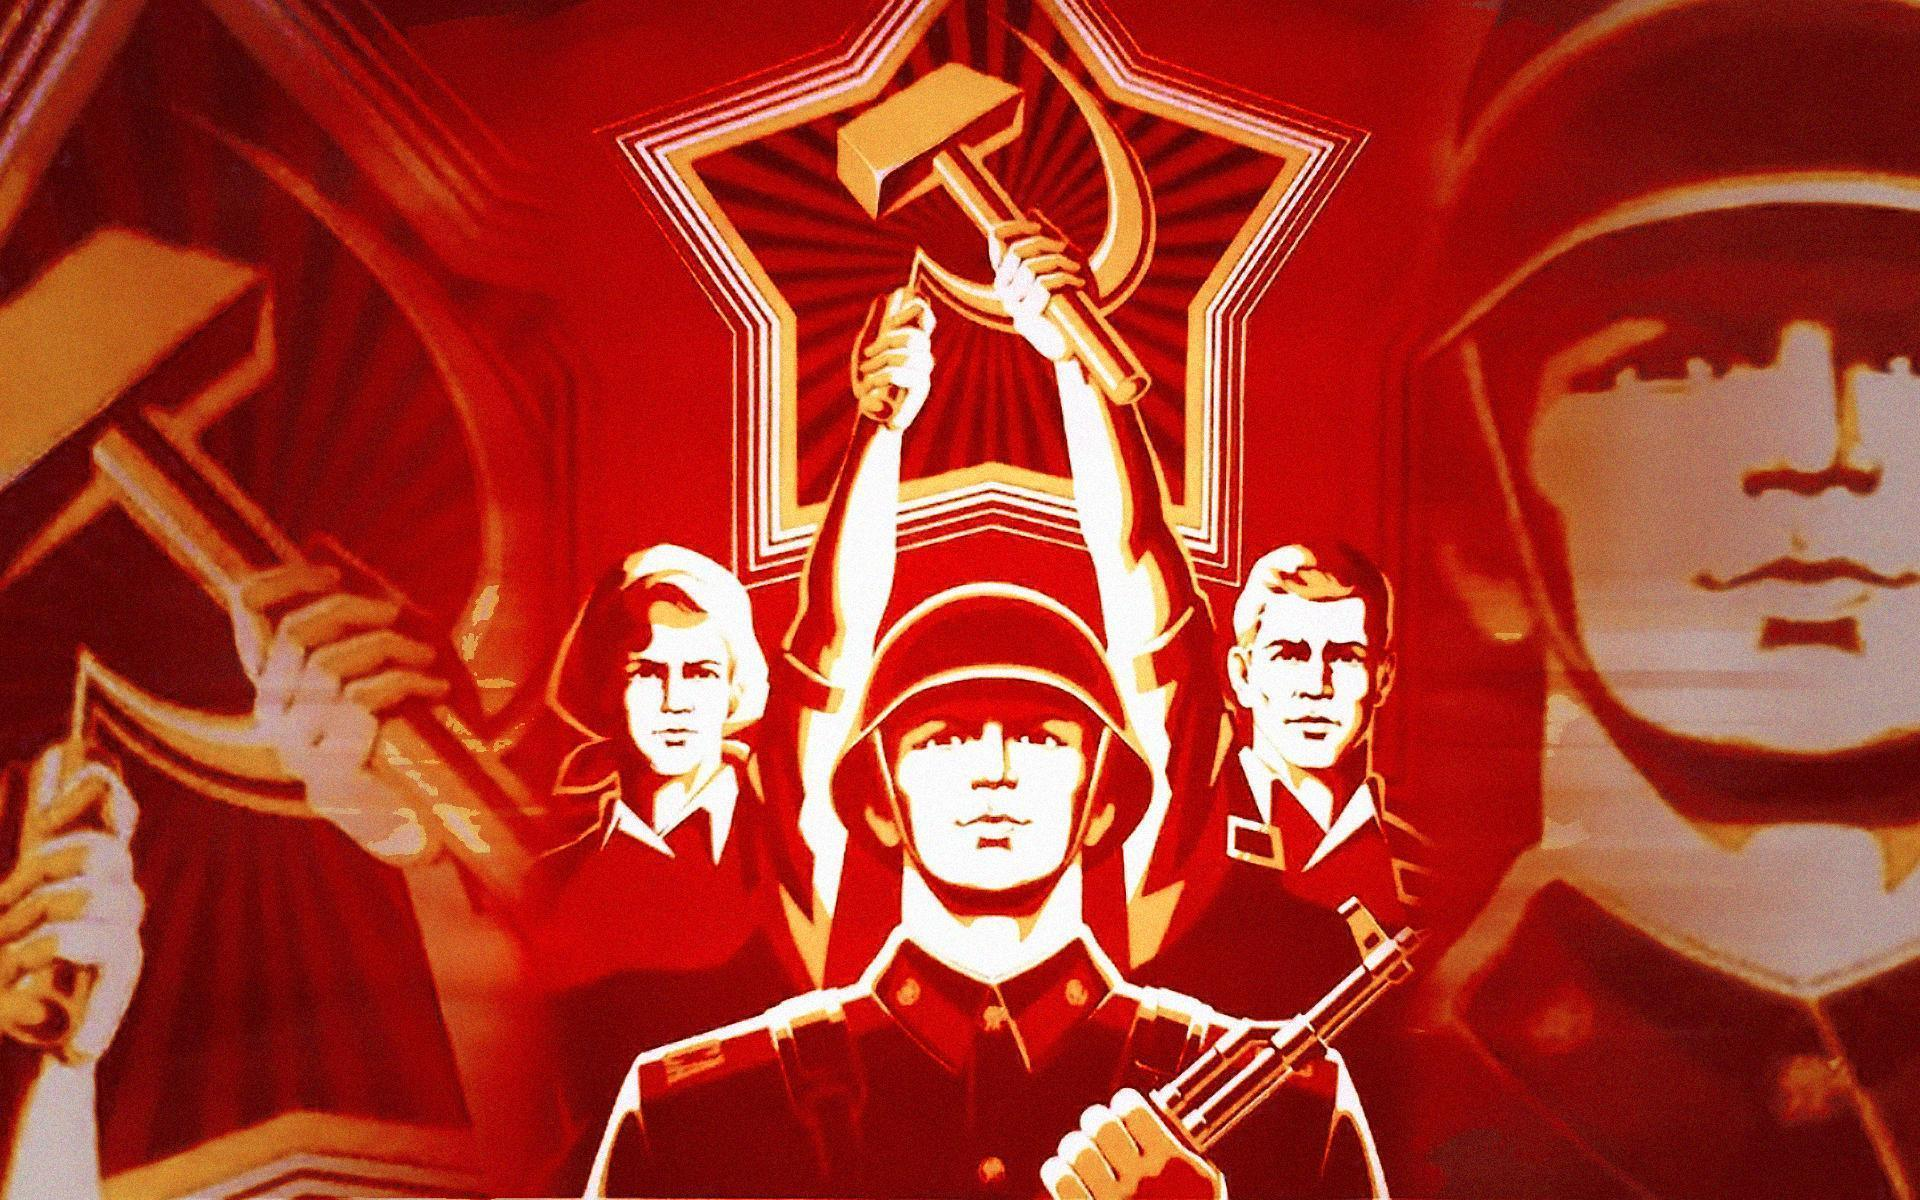 Soviet Russia Wallpapers   Top Soviet Russia Backgrounds 1920x1200